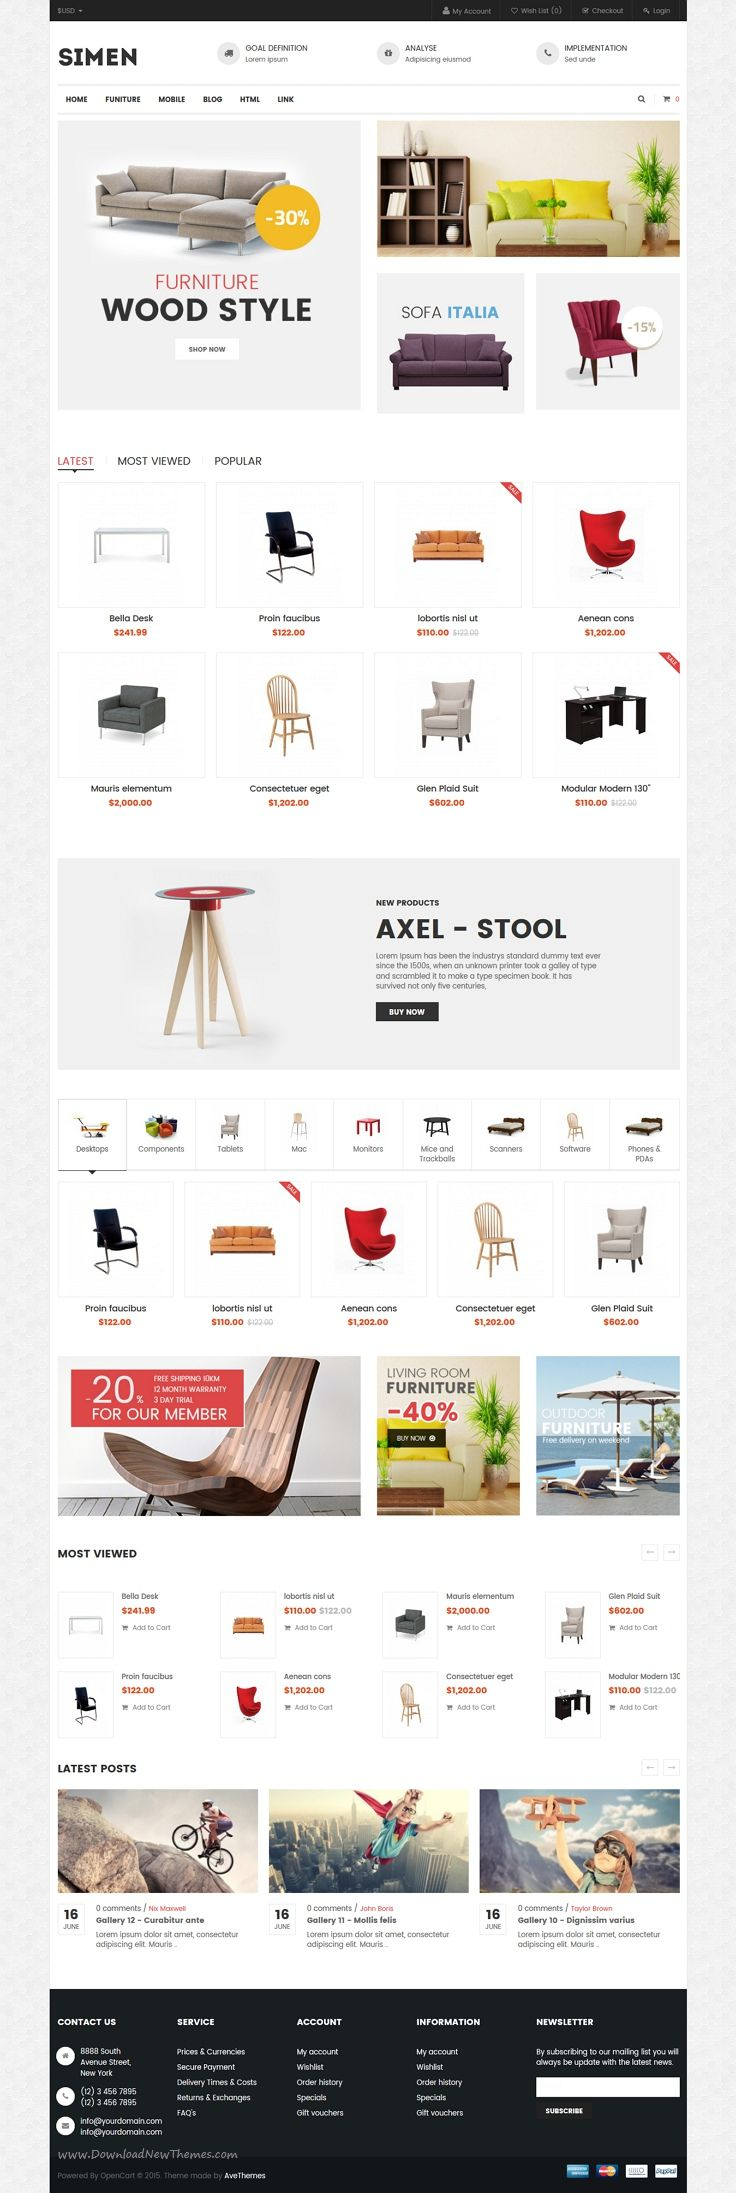 Simen is responsive theme that you could use for your own personal ...